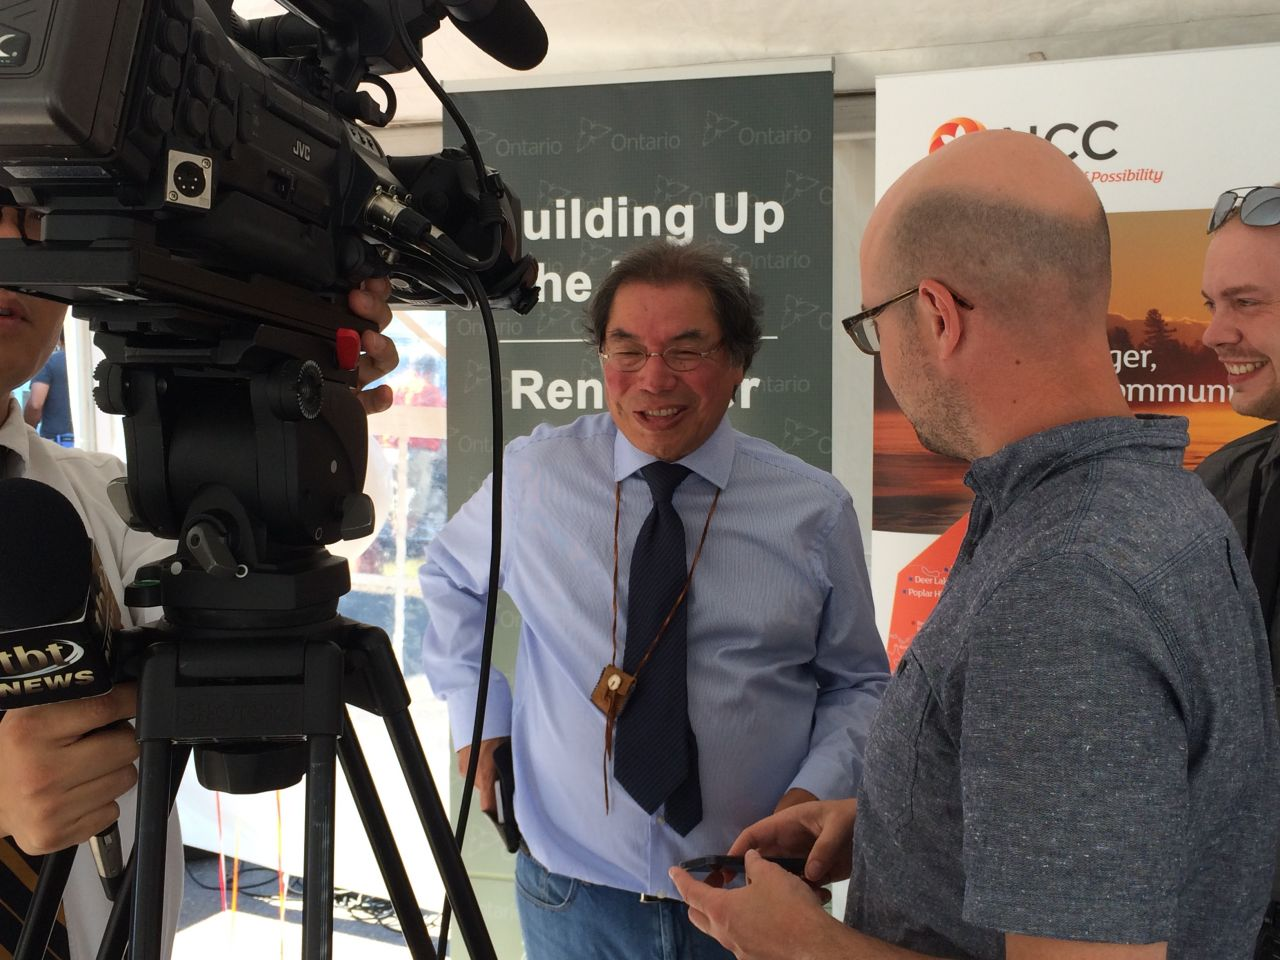 NCC CEO Geordi Kakepetum talks to the media about the Ontario governments massive investment in fort severn's solar micro grid project